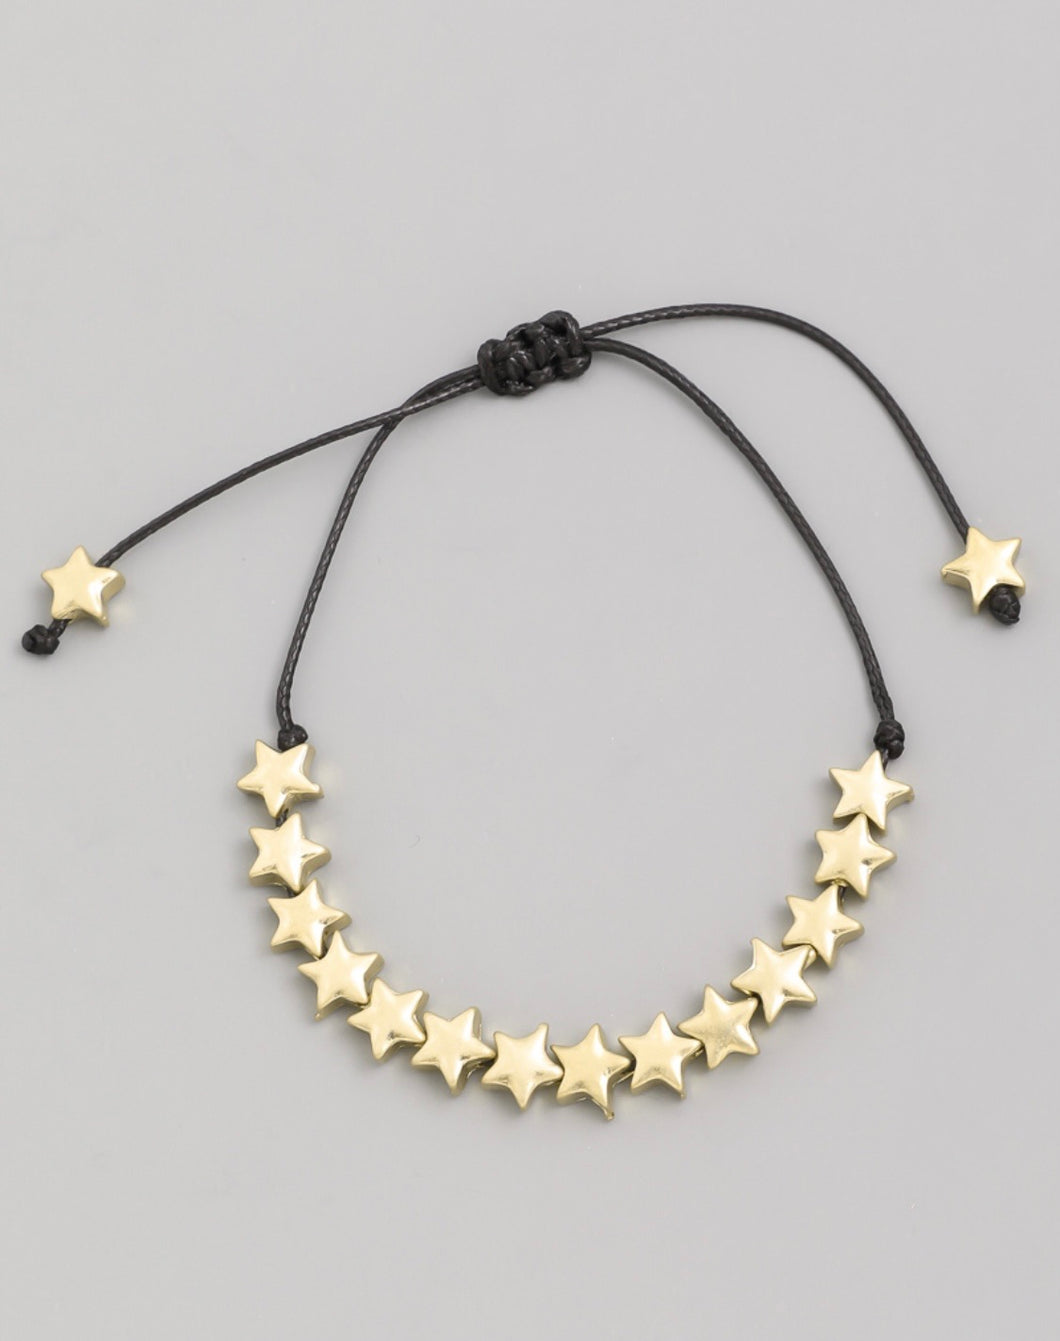 Multi Star Adjustable Bracelet